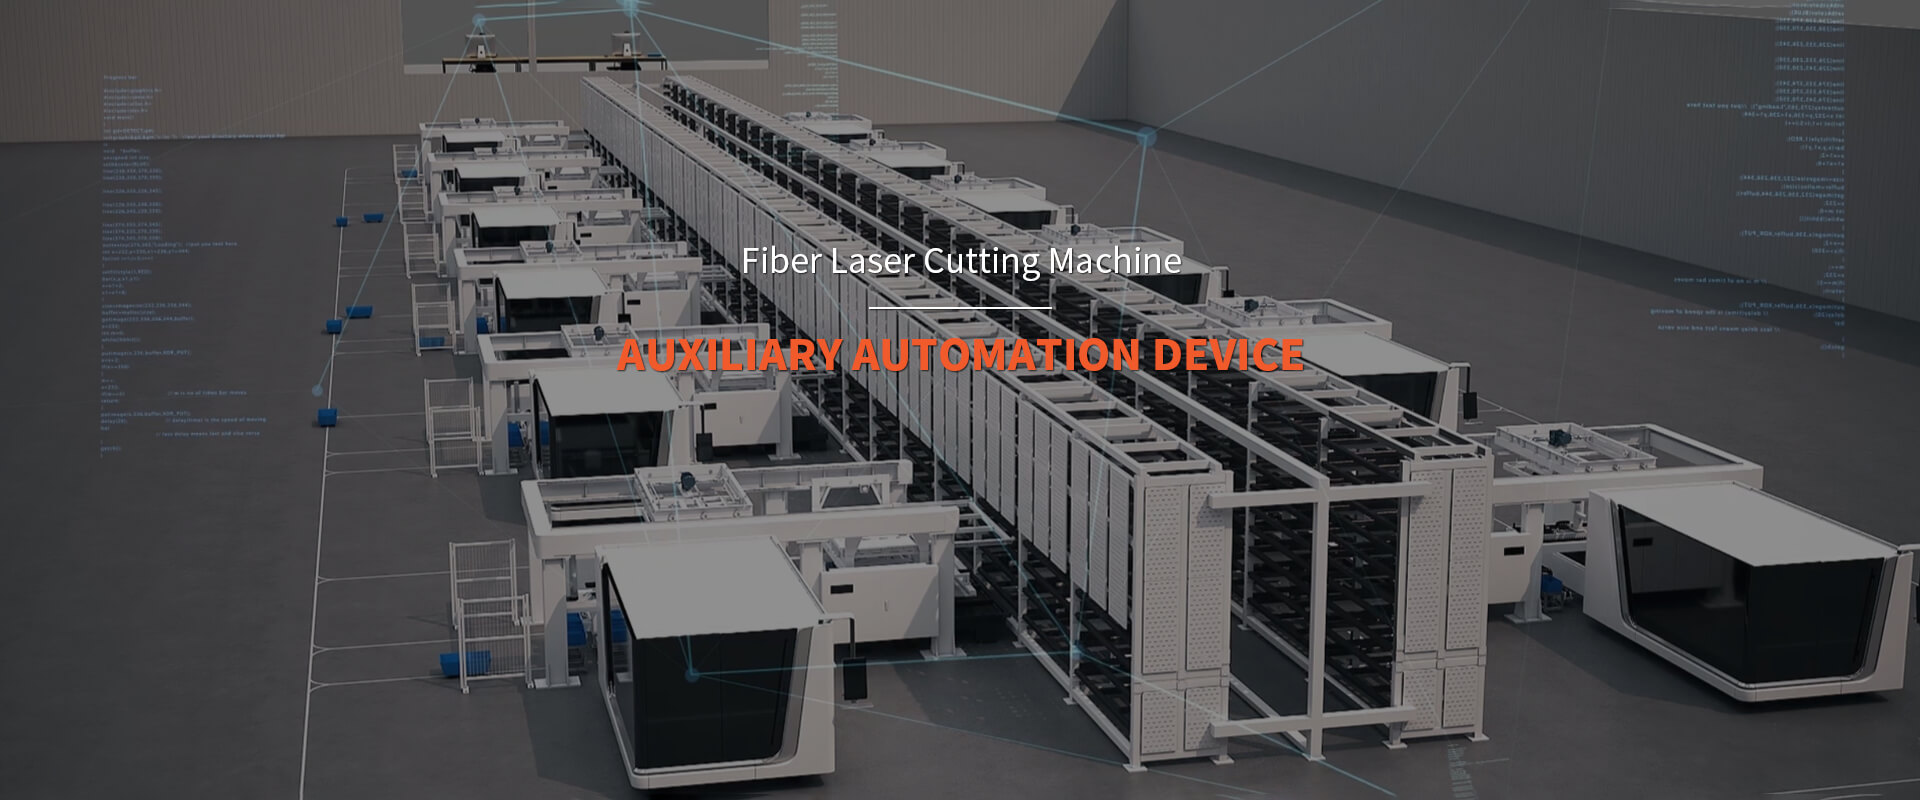 Sheet Cutting Automation Devices